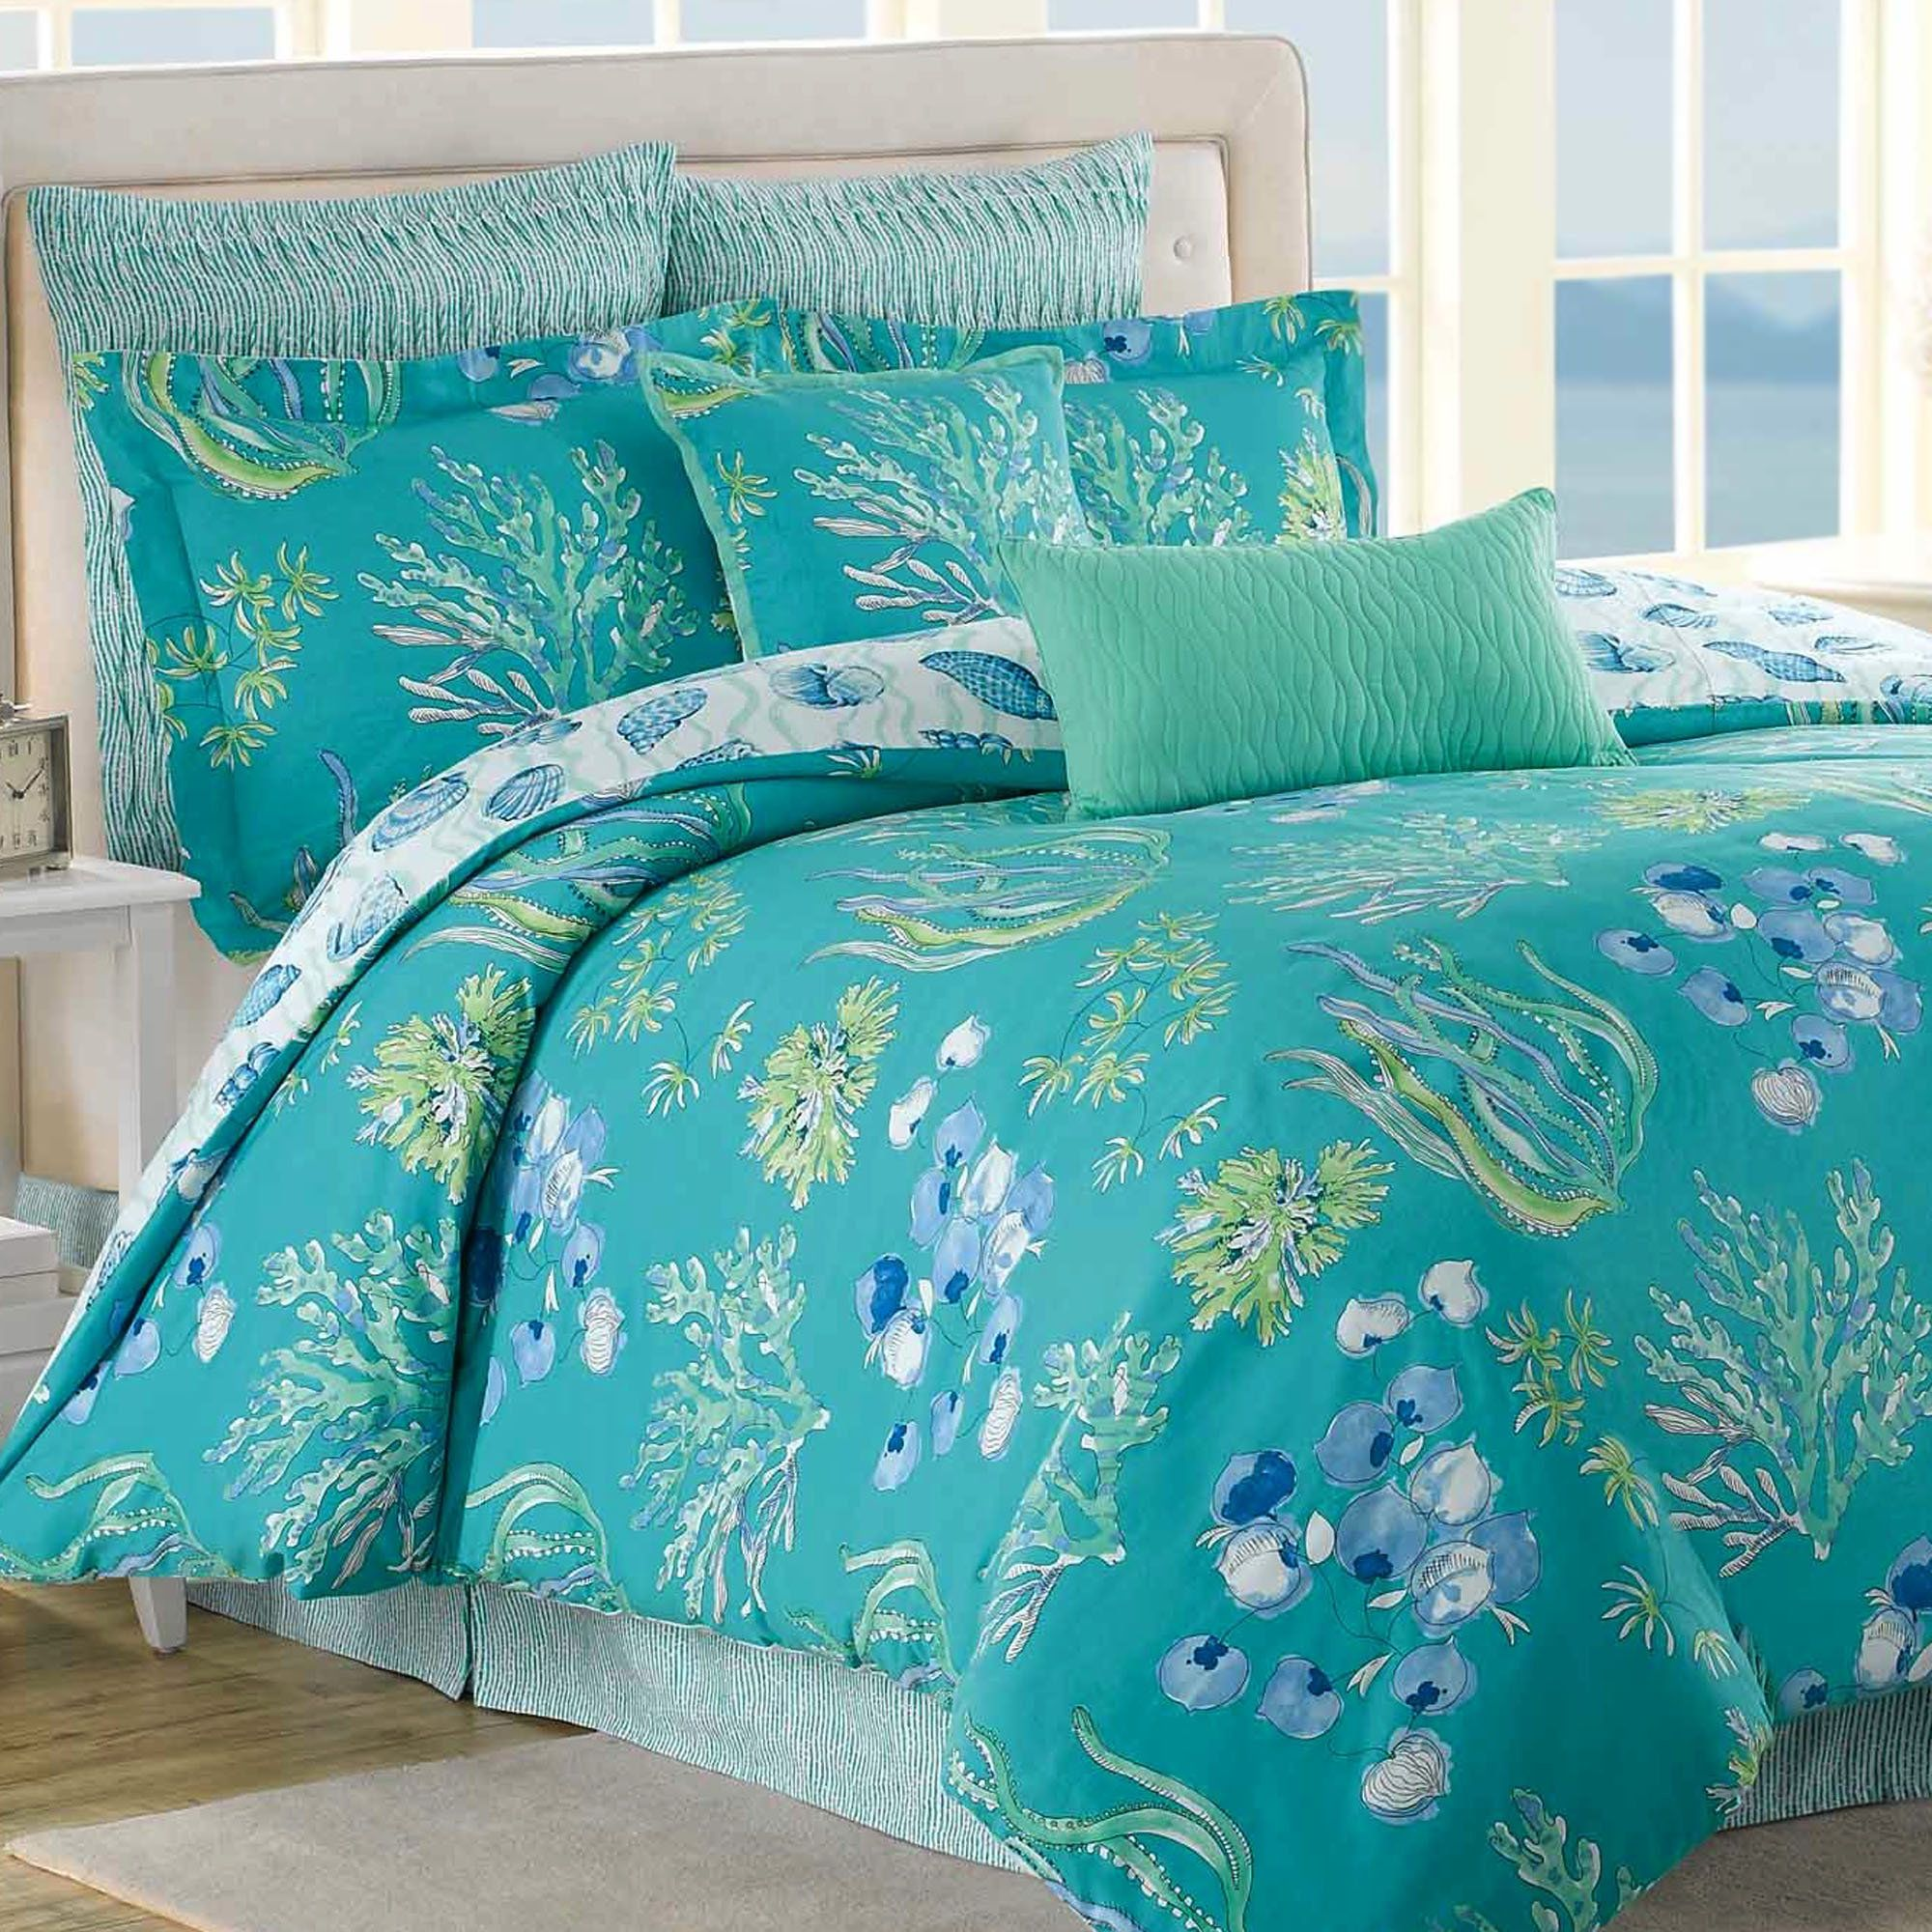 comforter kids themed farmhouse design house sets bedroom headboard ideas twin beach comforters tropical designs bedding good sea